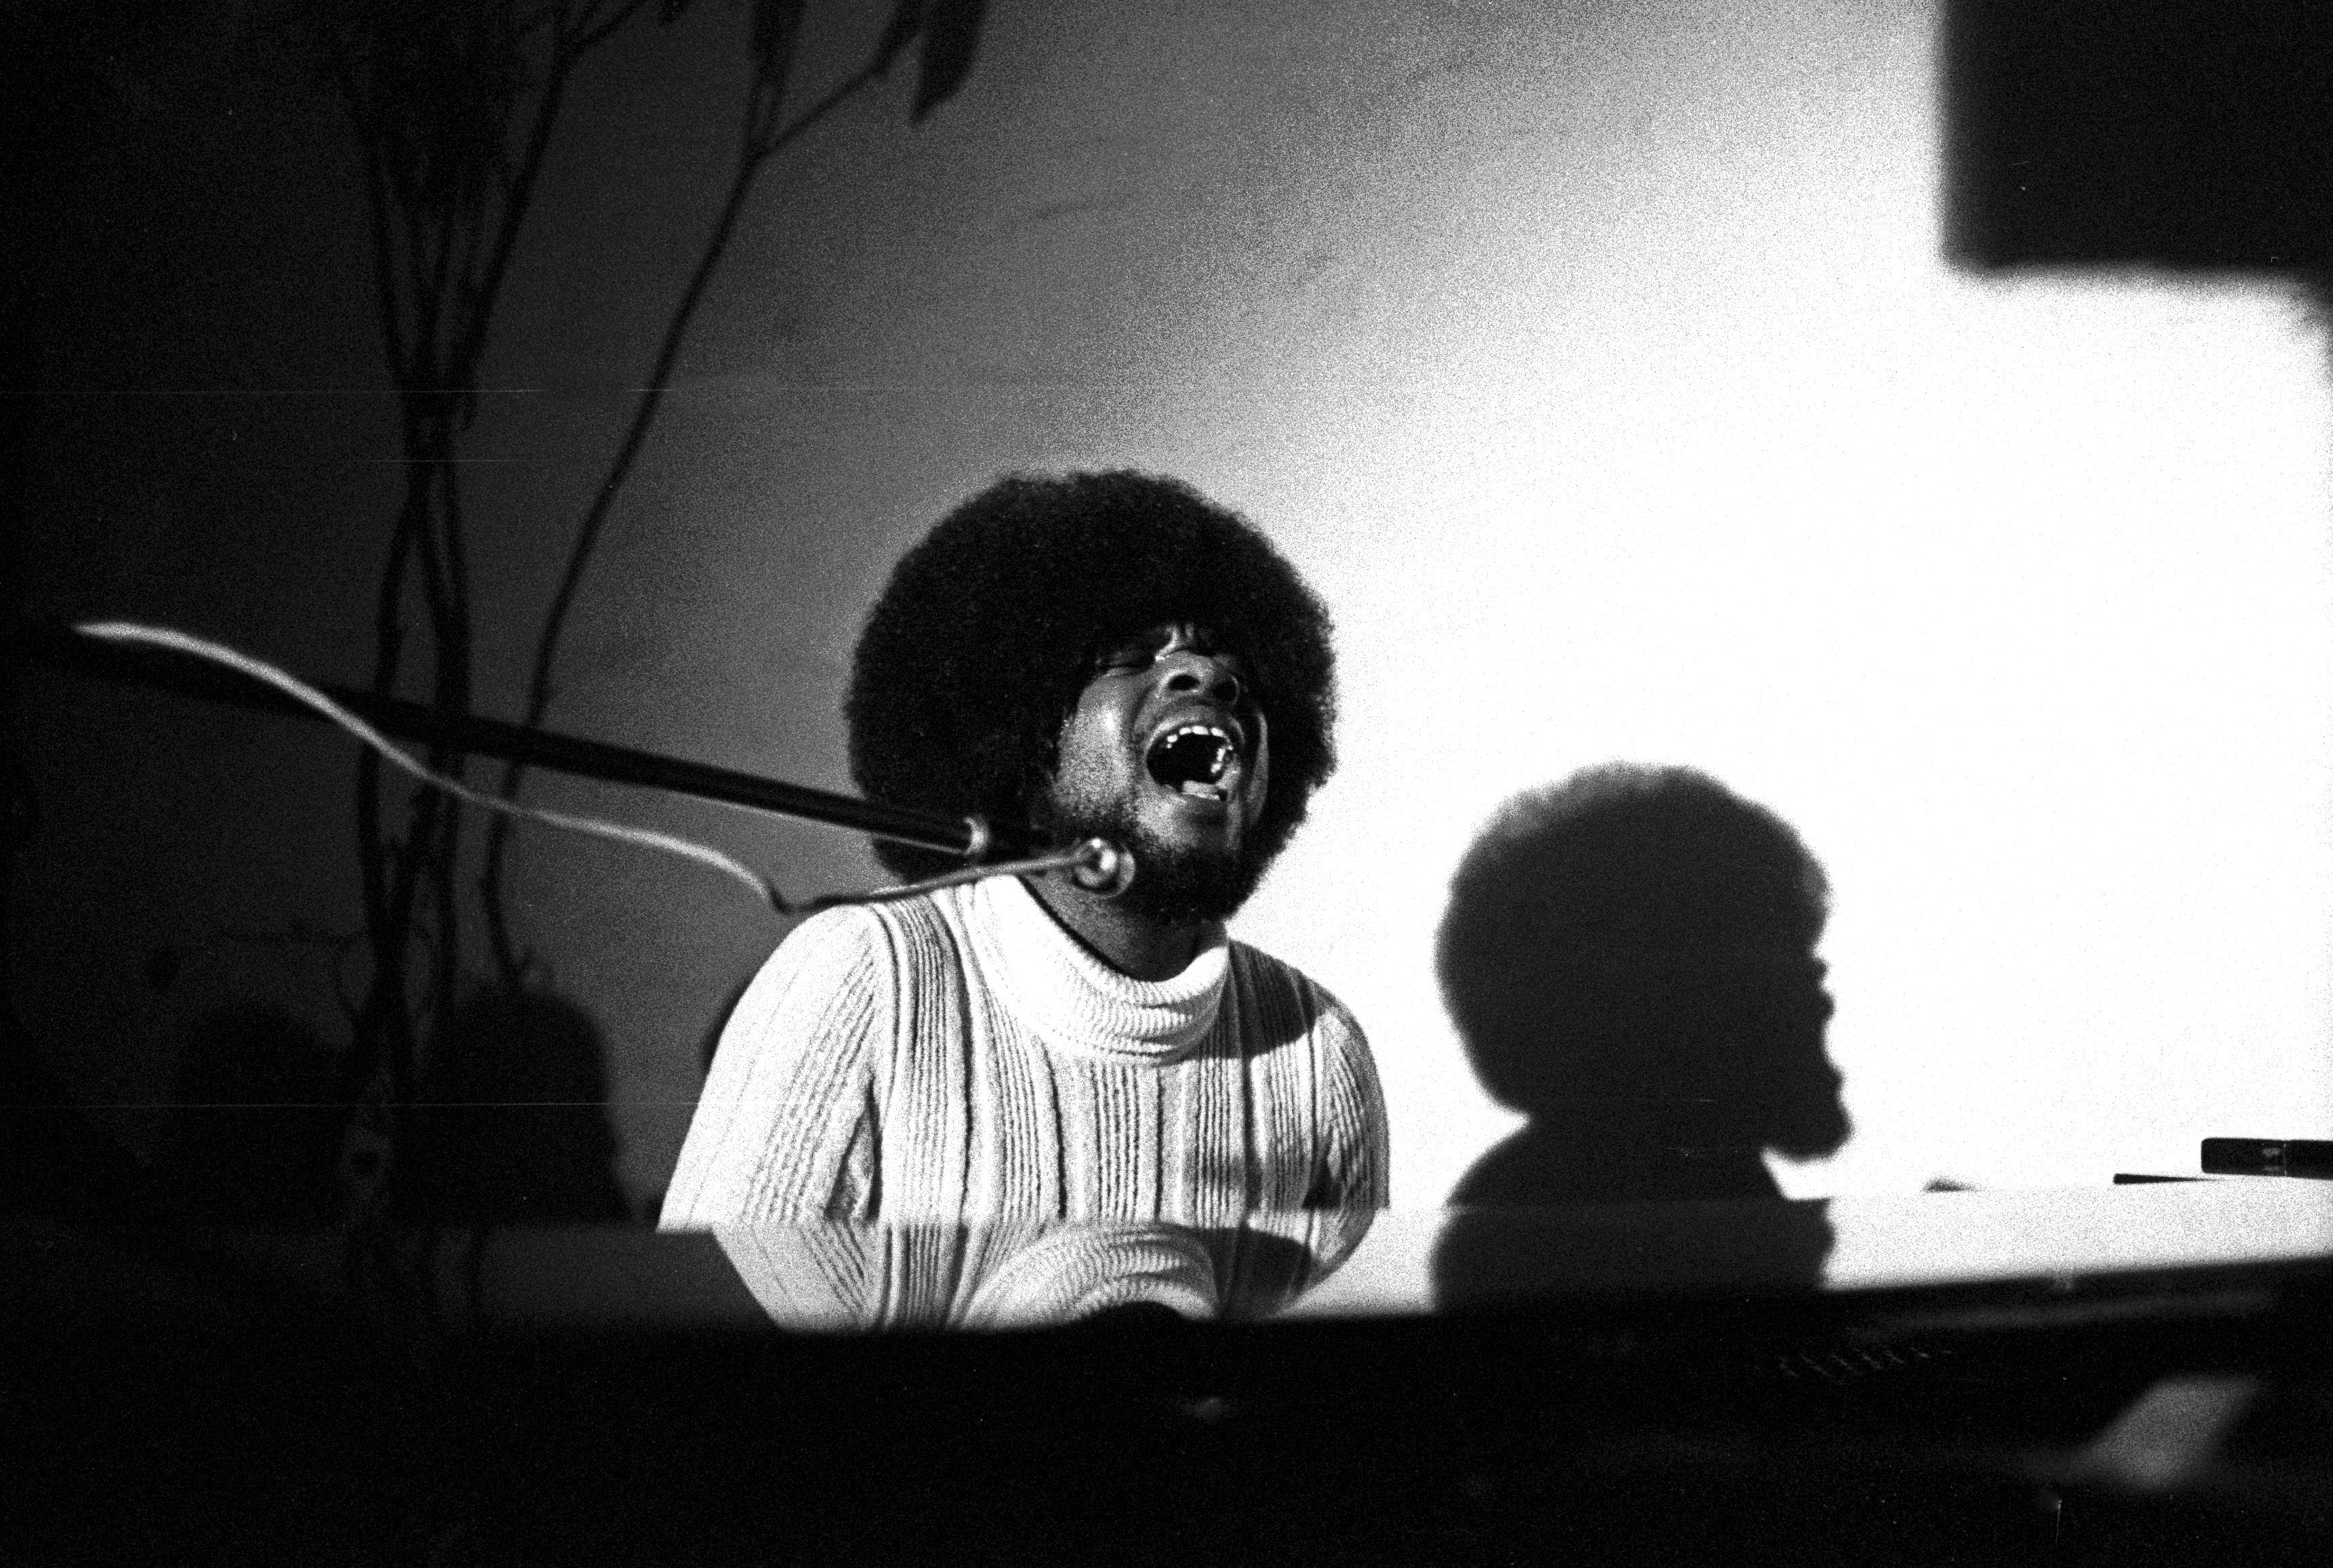 Billy_Preston_perforning_in_1971.jpg